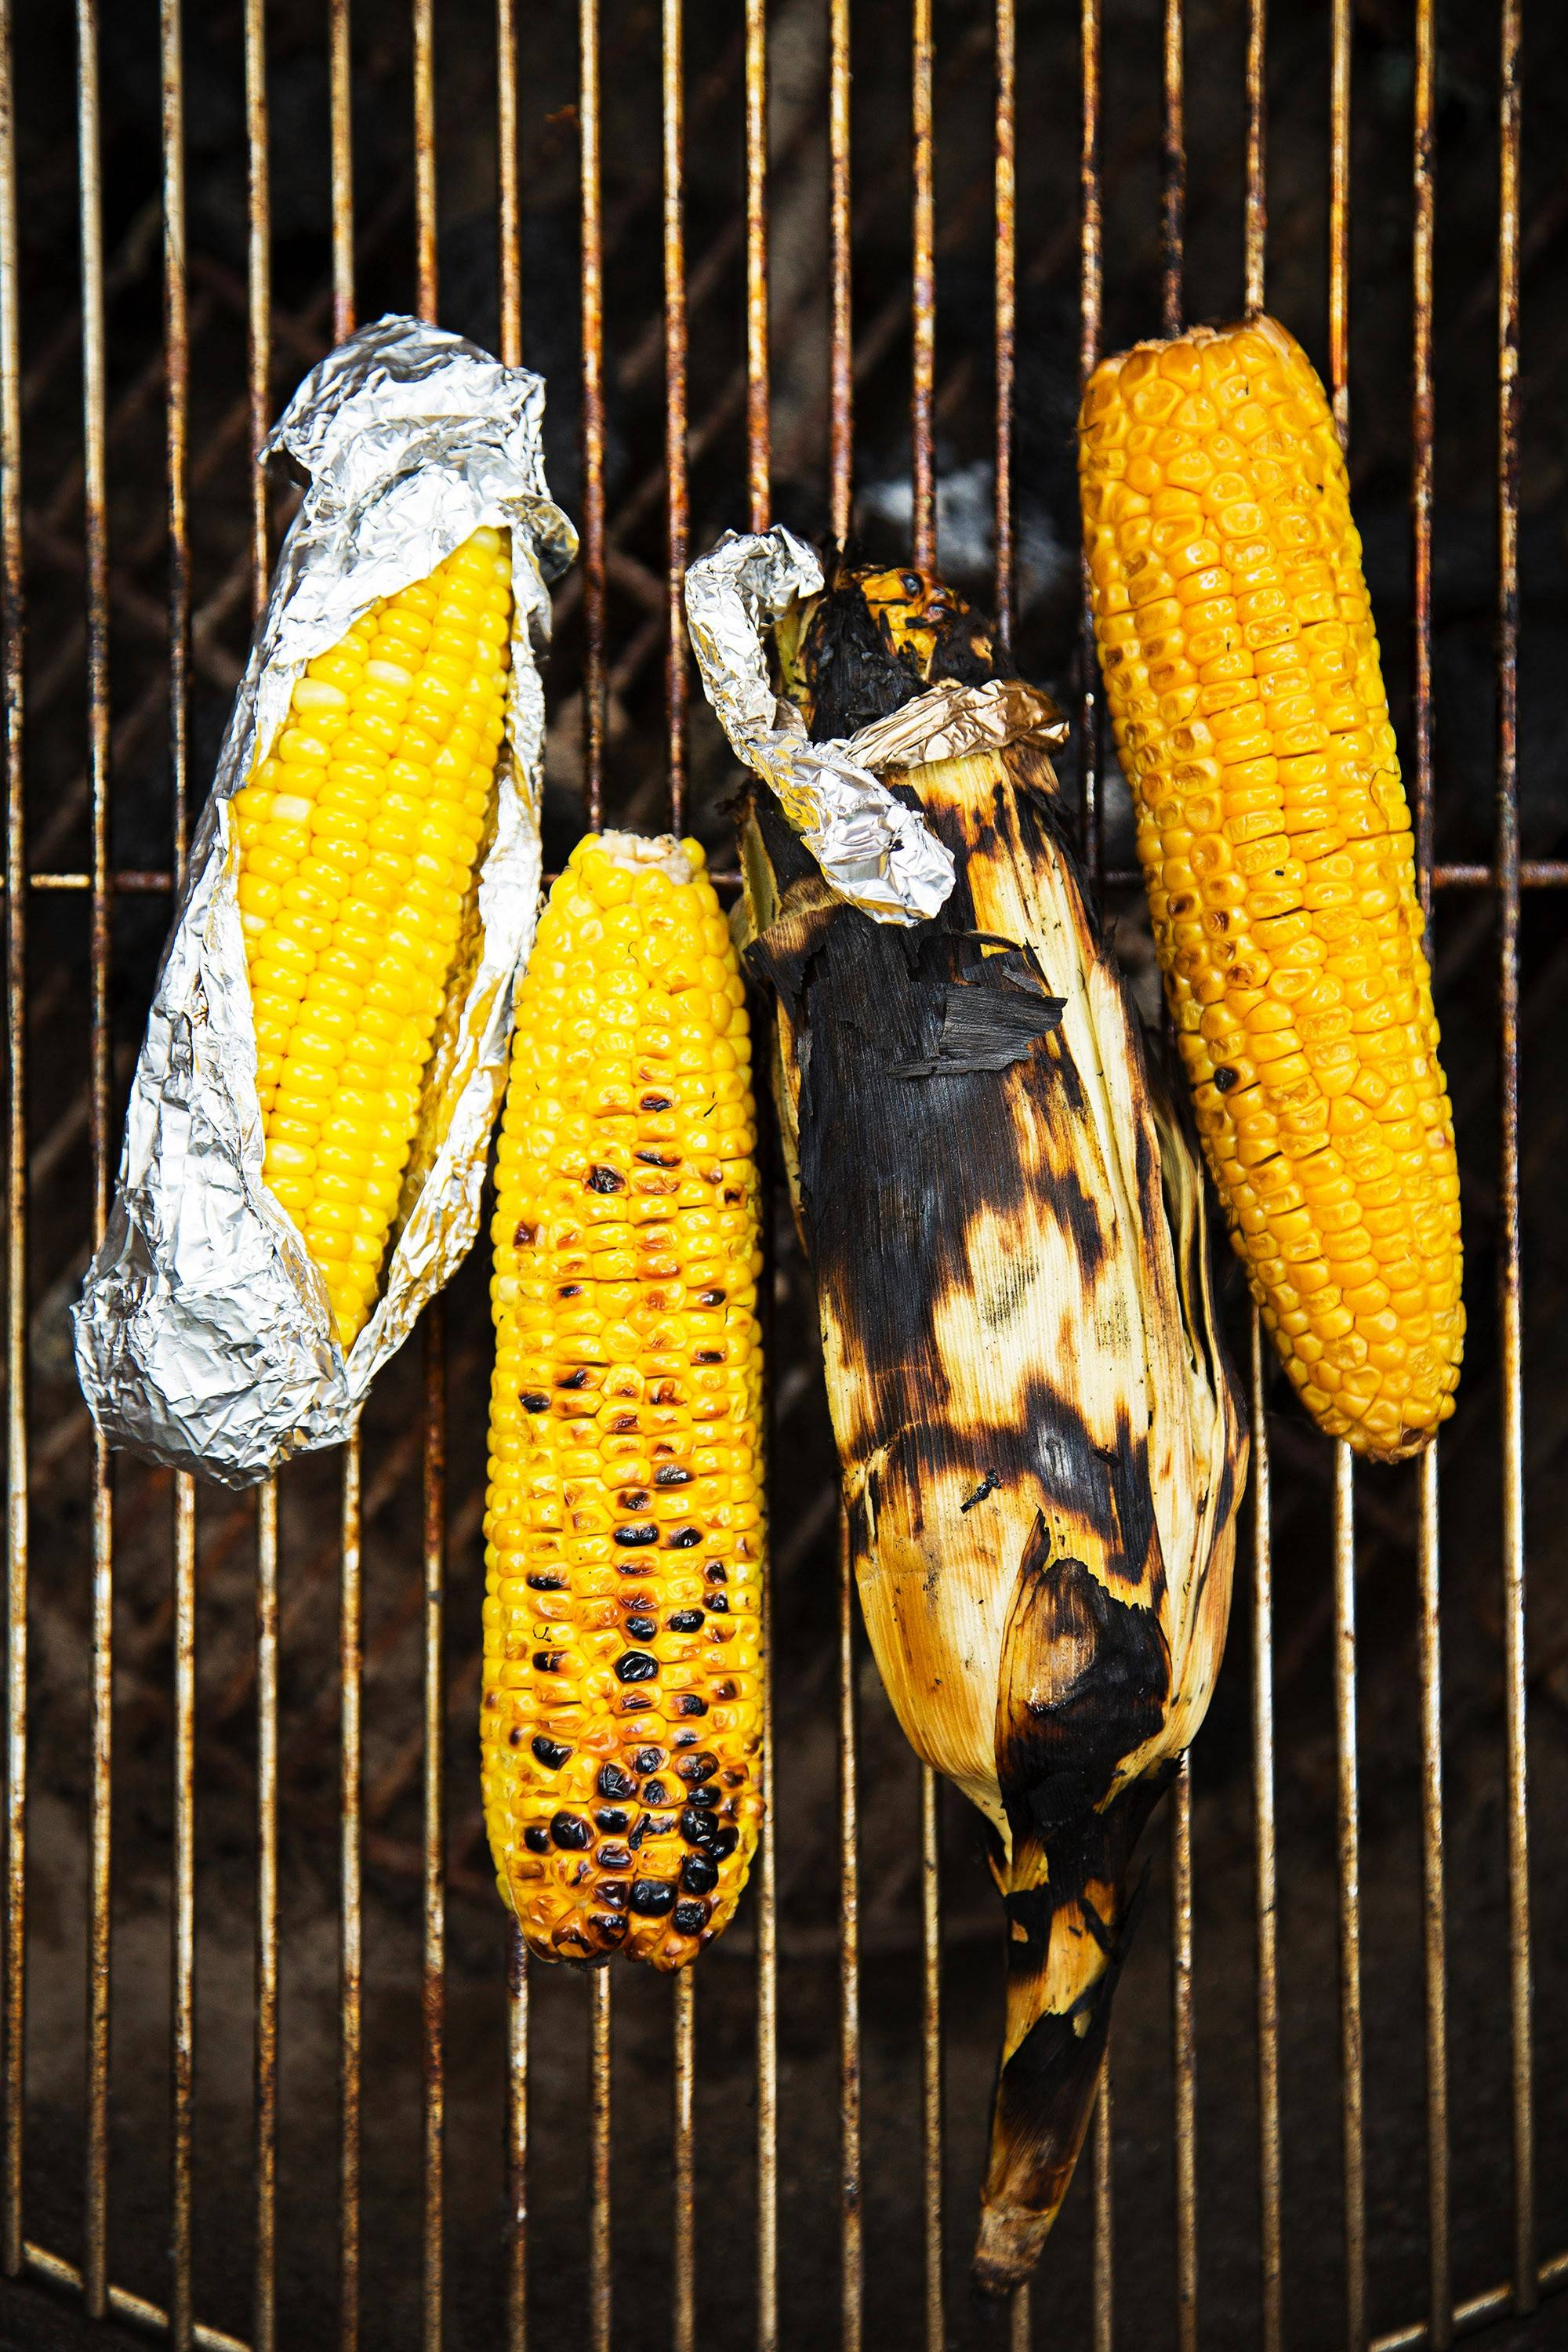 Grilled Corn Four Ways. Oak and apple woods work especially well because they are mild, but other hardwoods, such as pecan and cherry, are fine.